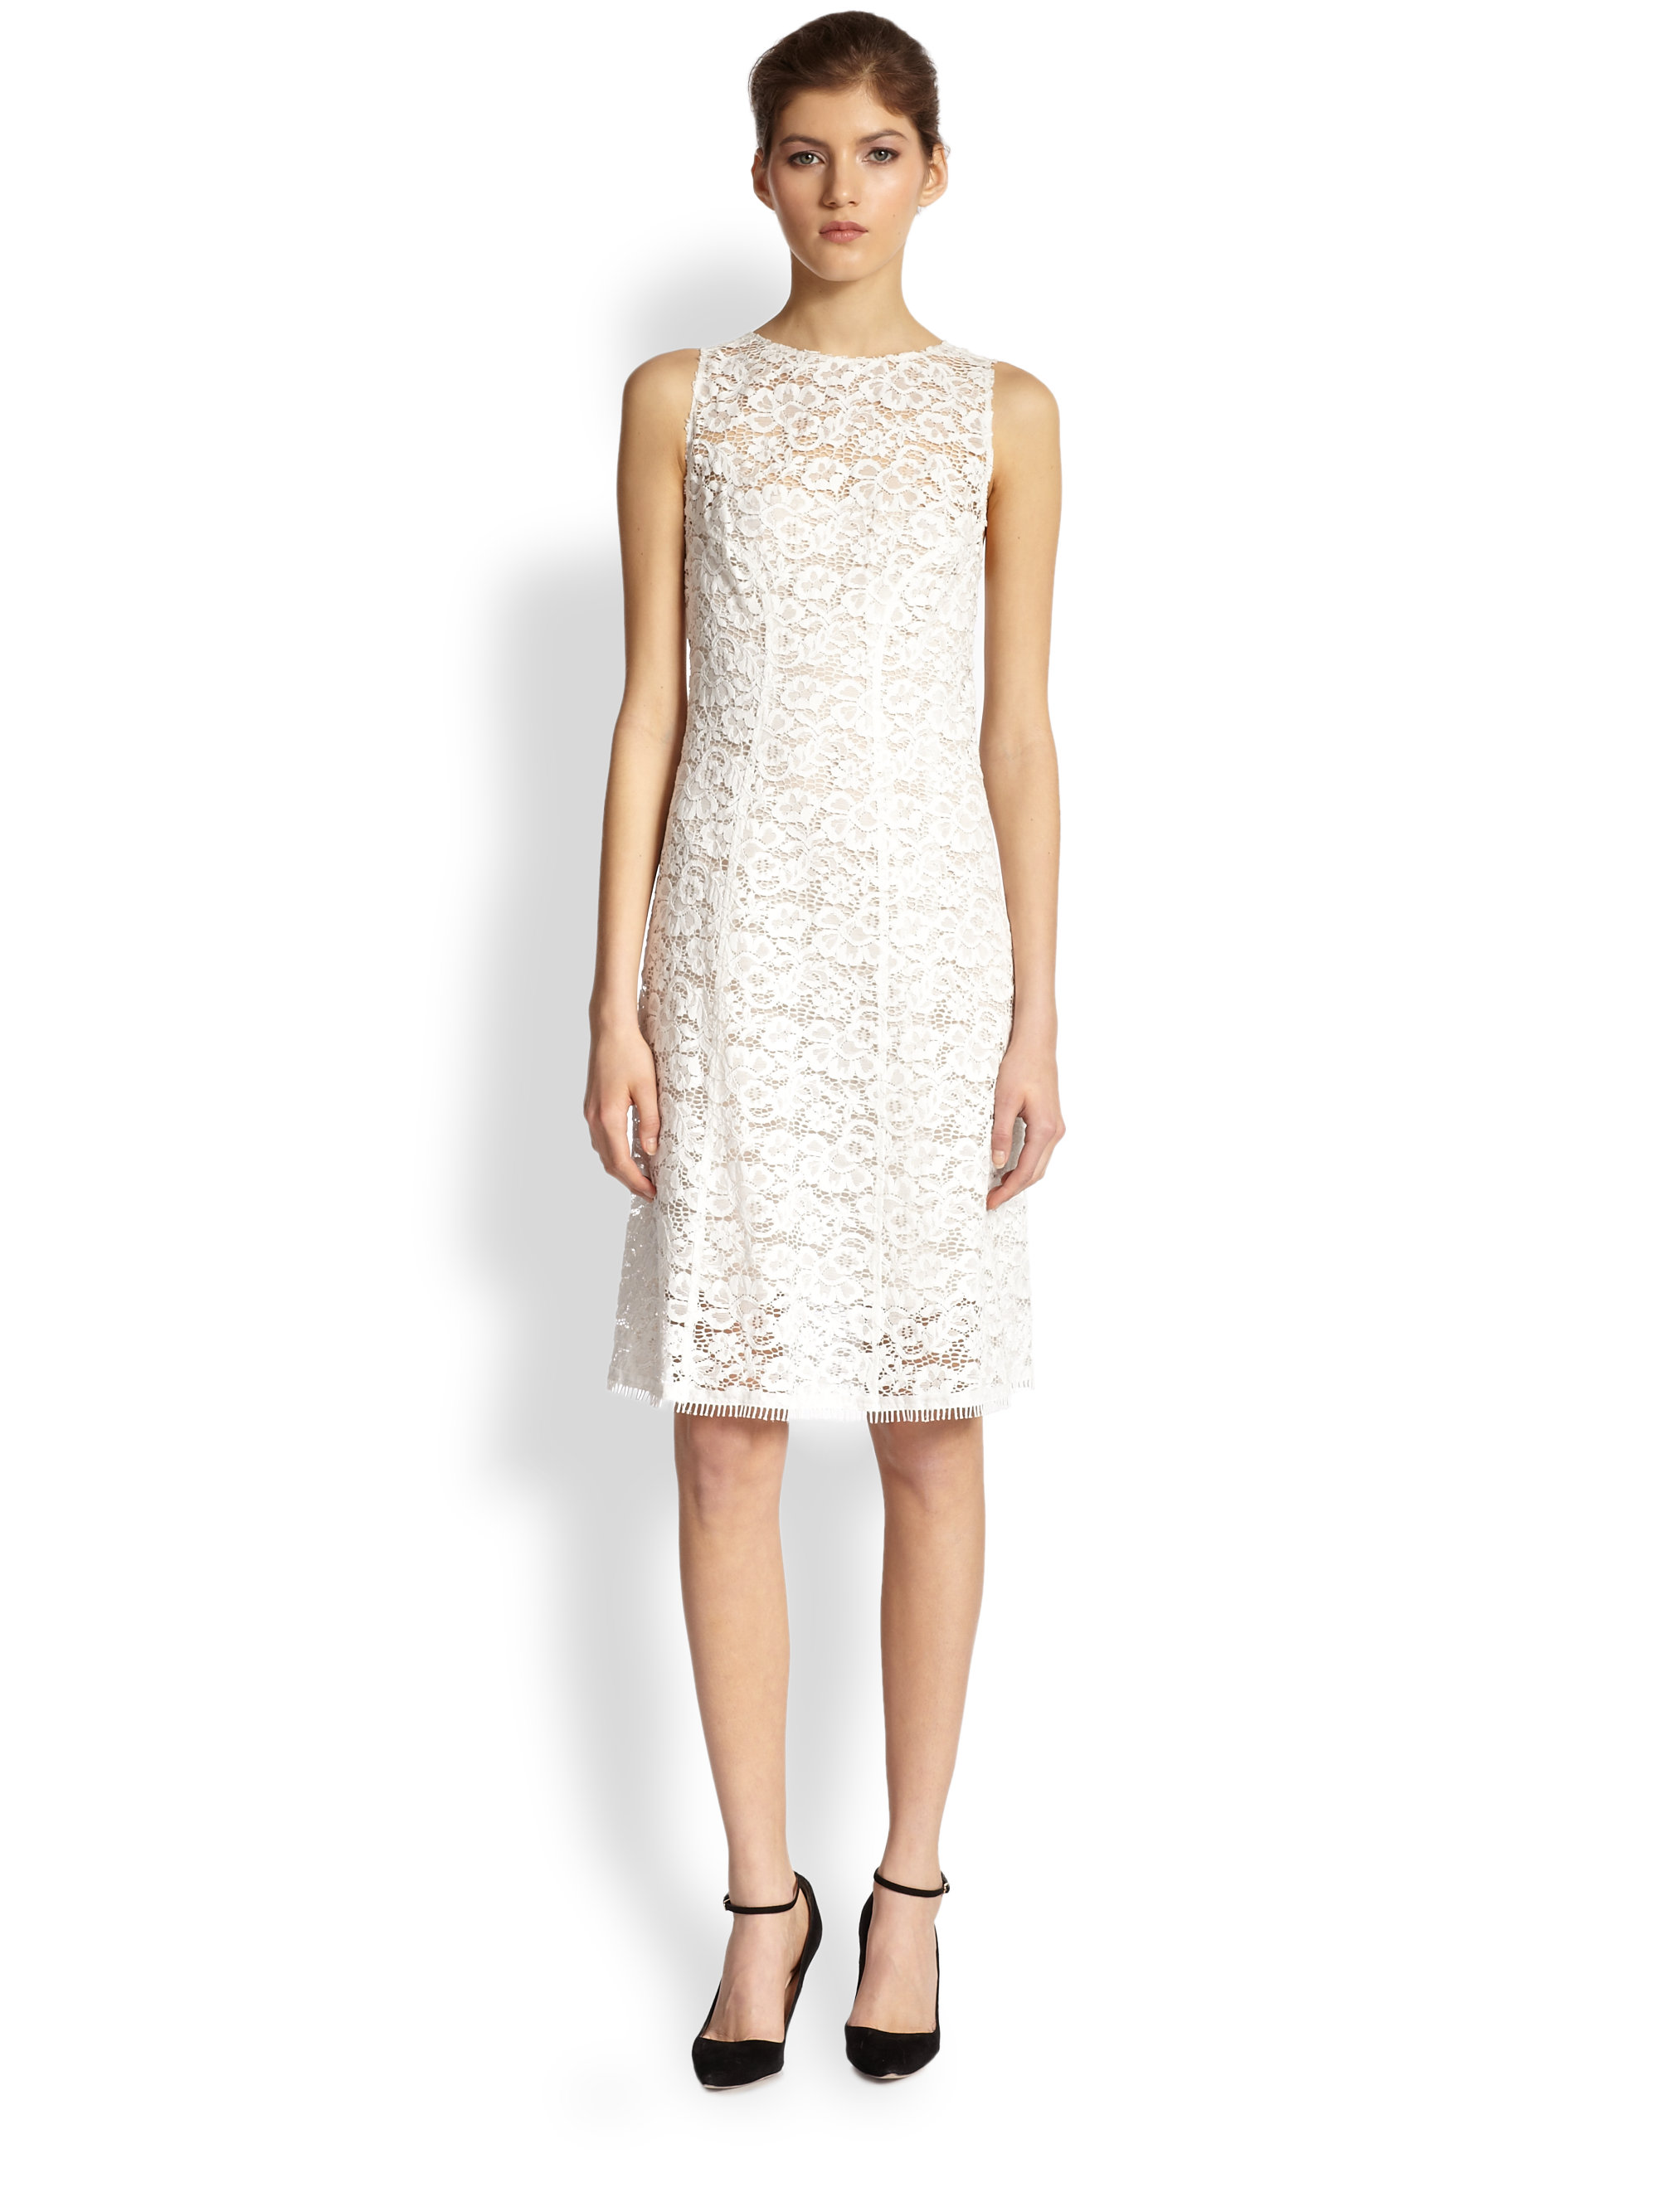 Lyst - Nina Ricci Lace Illusion Dress in White 615b62e3a